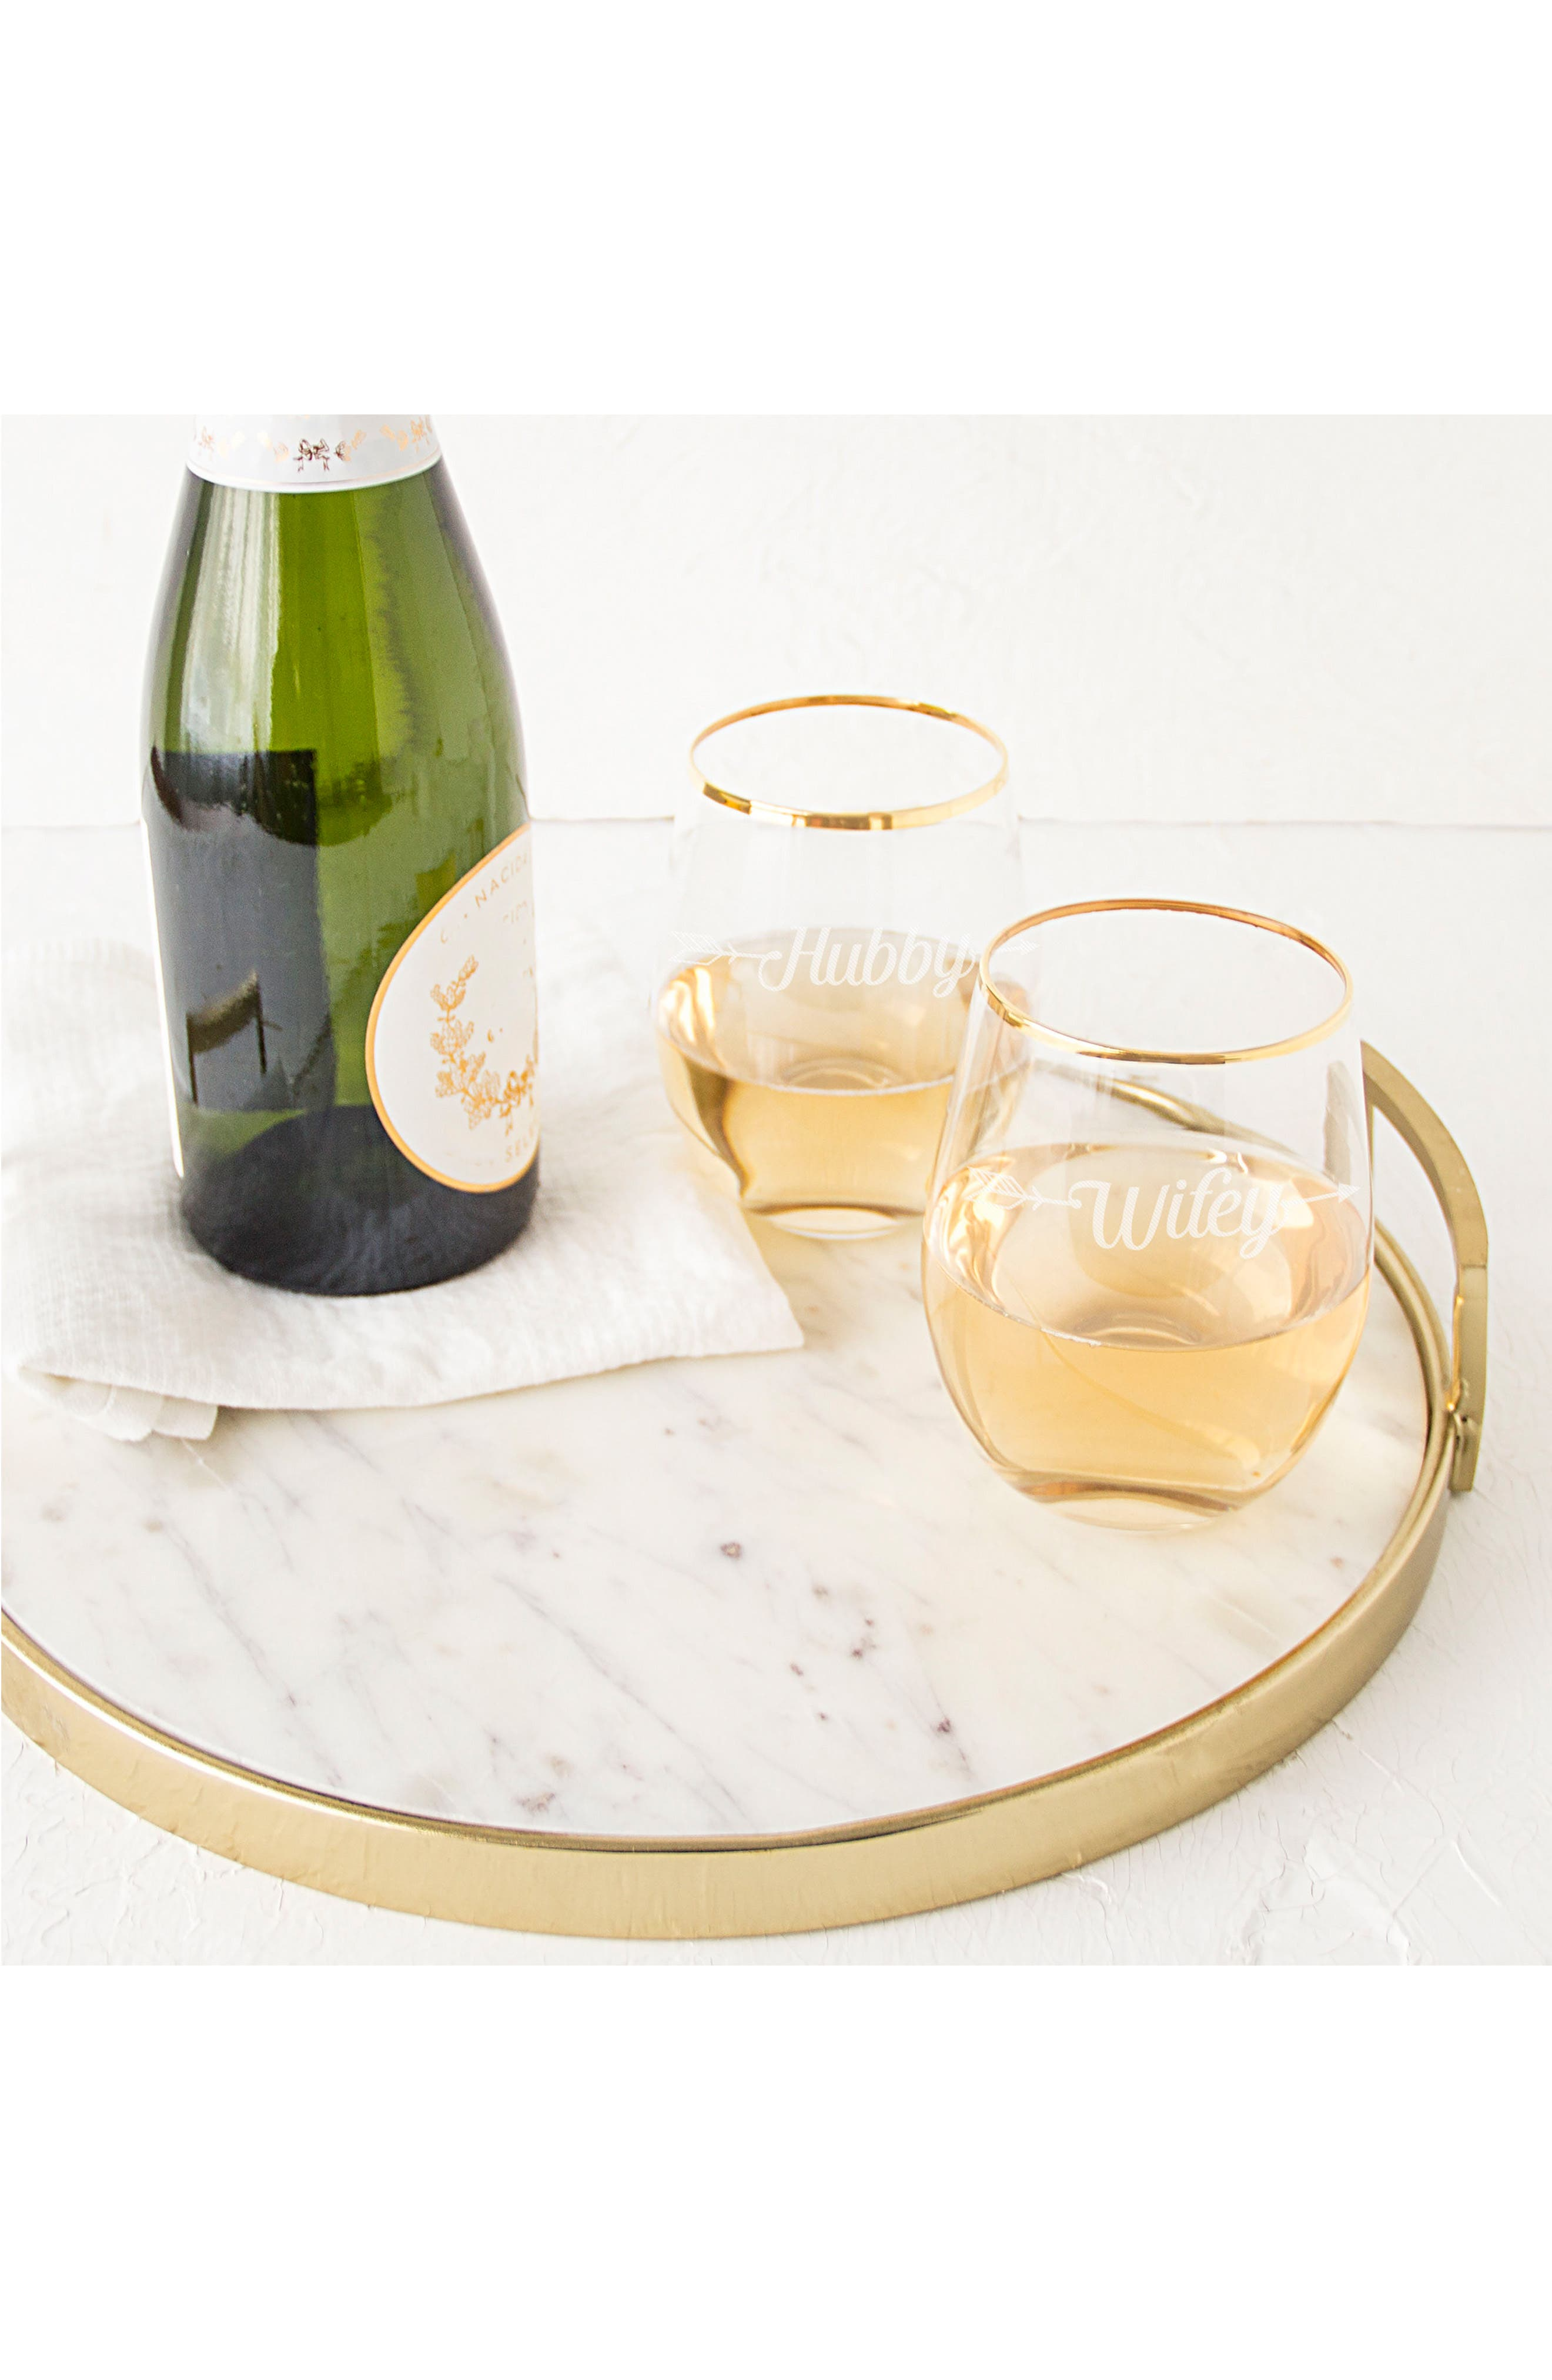 Hubby/Wifey Set of 2 Gold Rimmed Stemless Wine Glasses,                             Alternate thumbnail 6, color,                             710